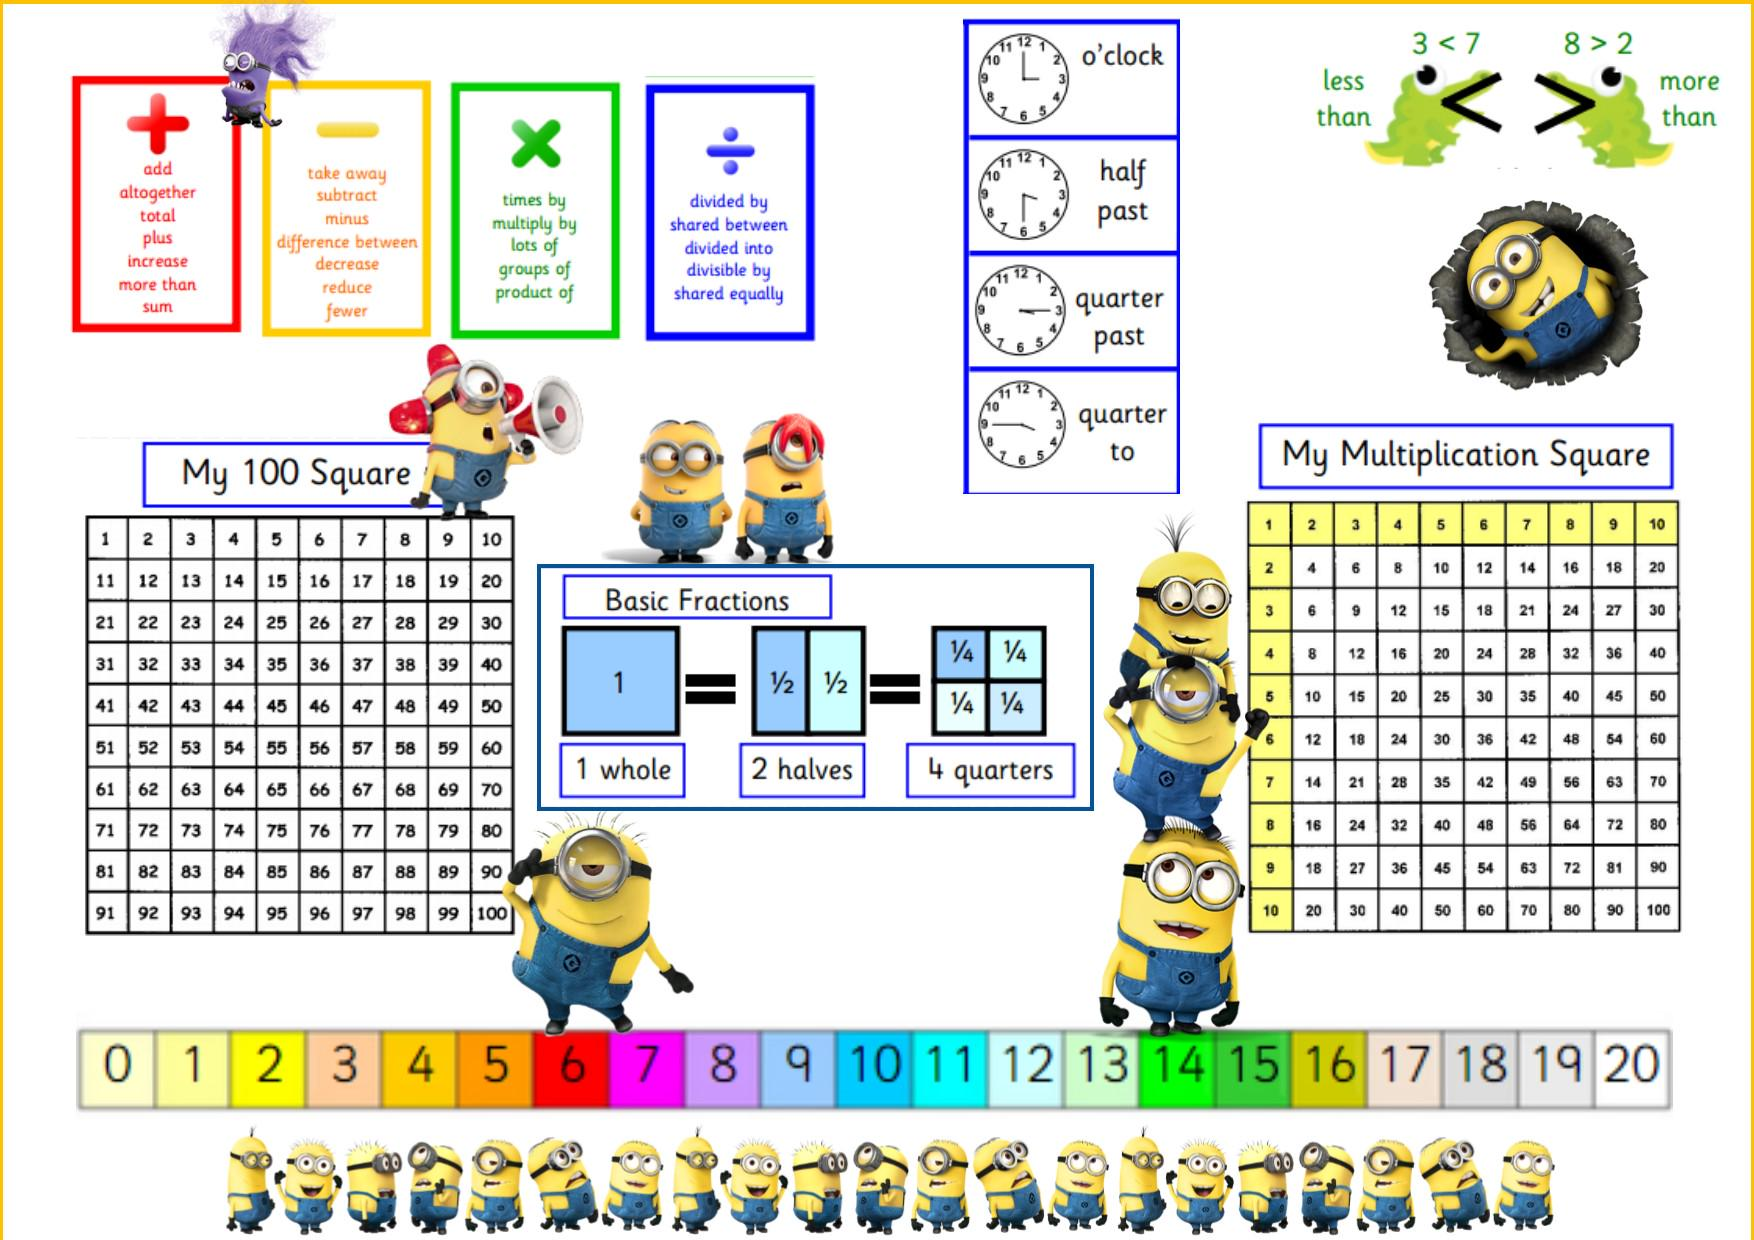 graham andre 39 on twitter new minions maths shed ukedchat. Black Bedroom Furniture Sets. Home Design Ideas